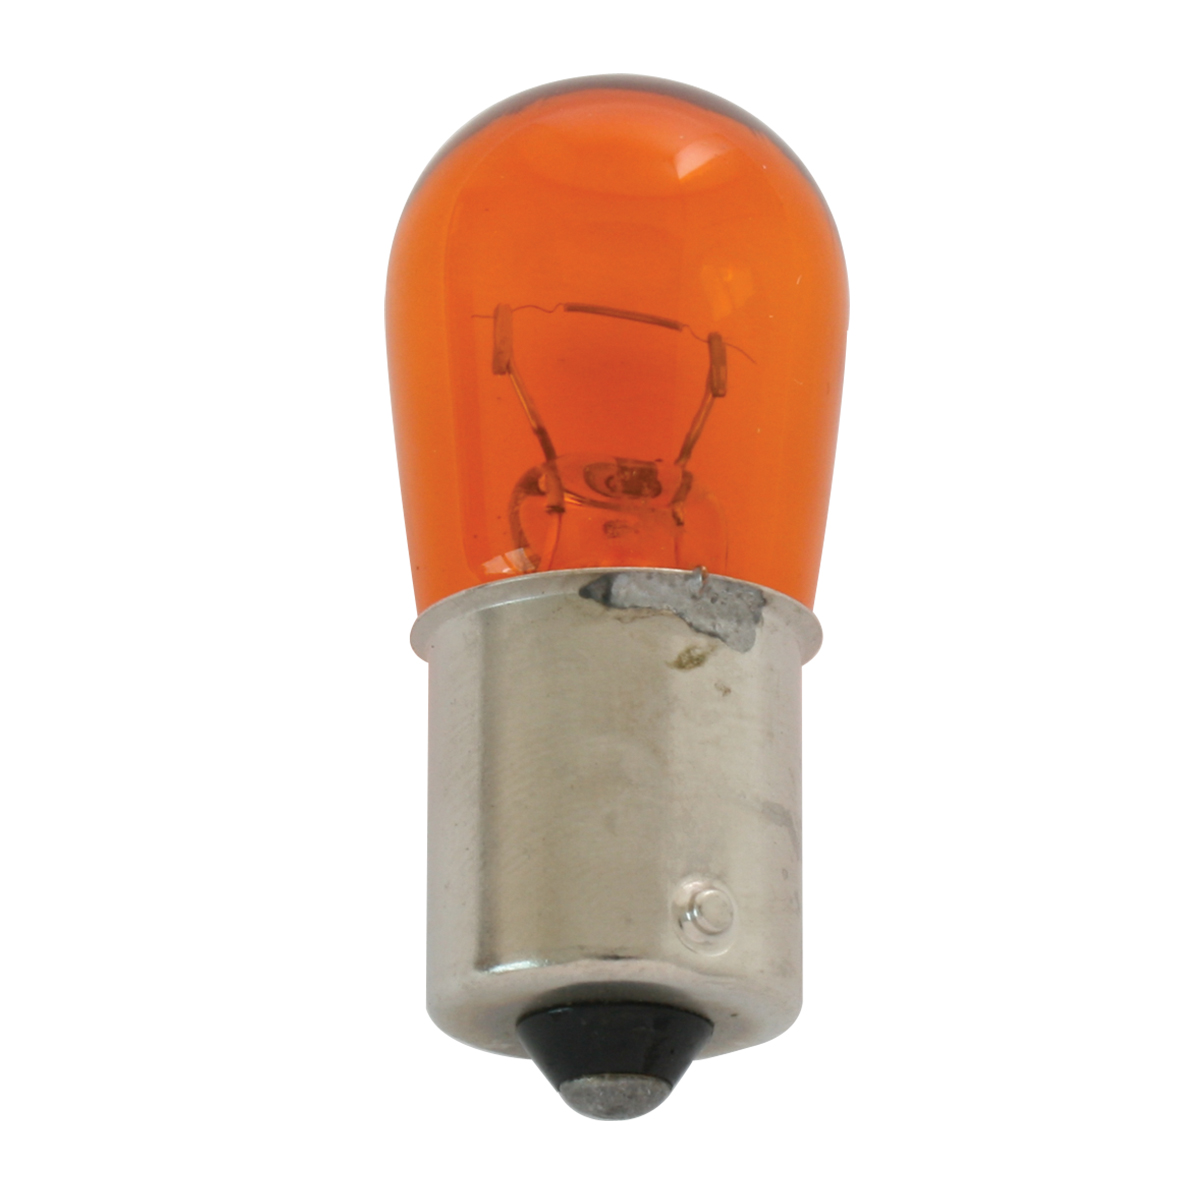 #84001 Miniature Replacement #1003 Amber Light Bulb